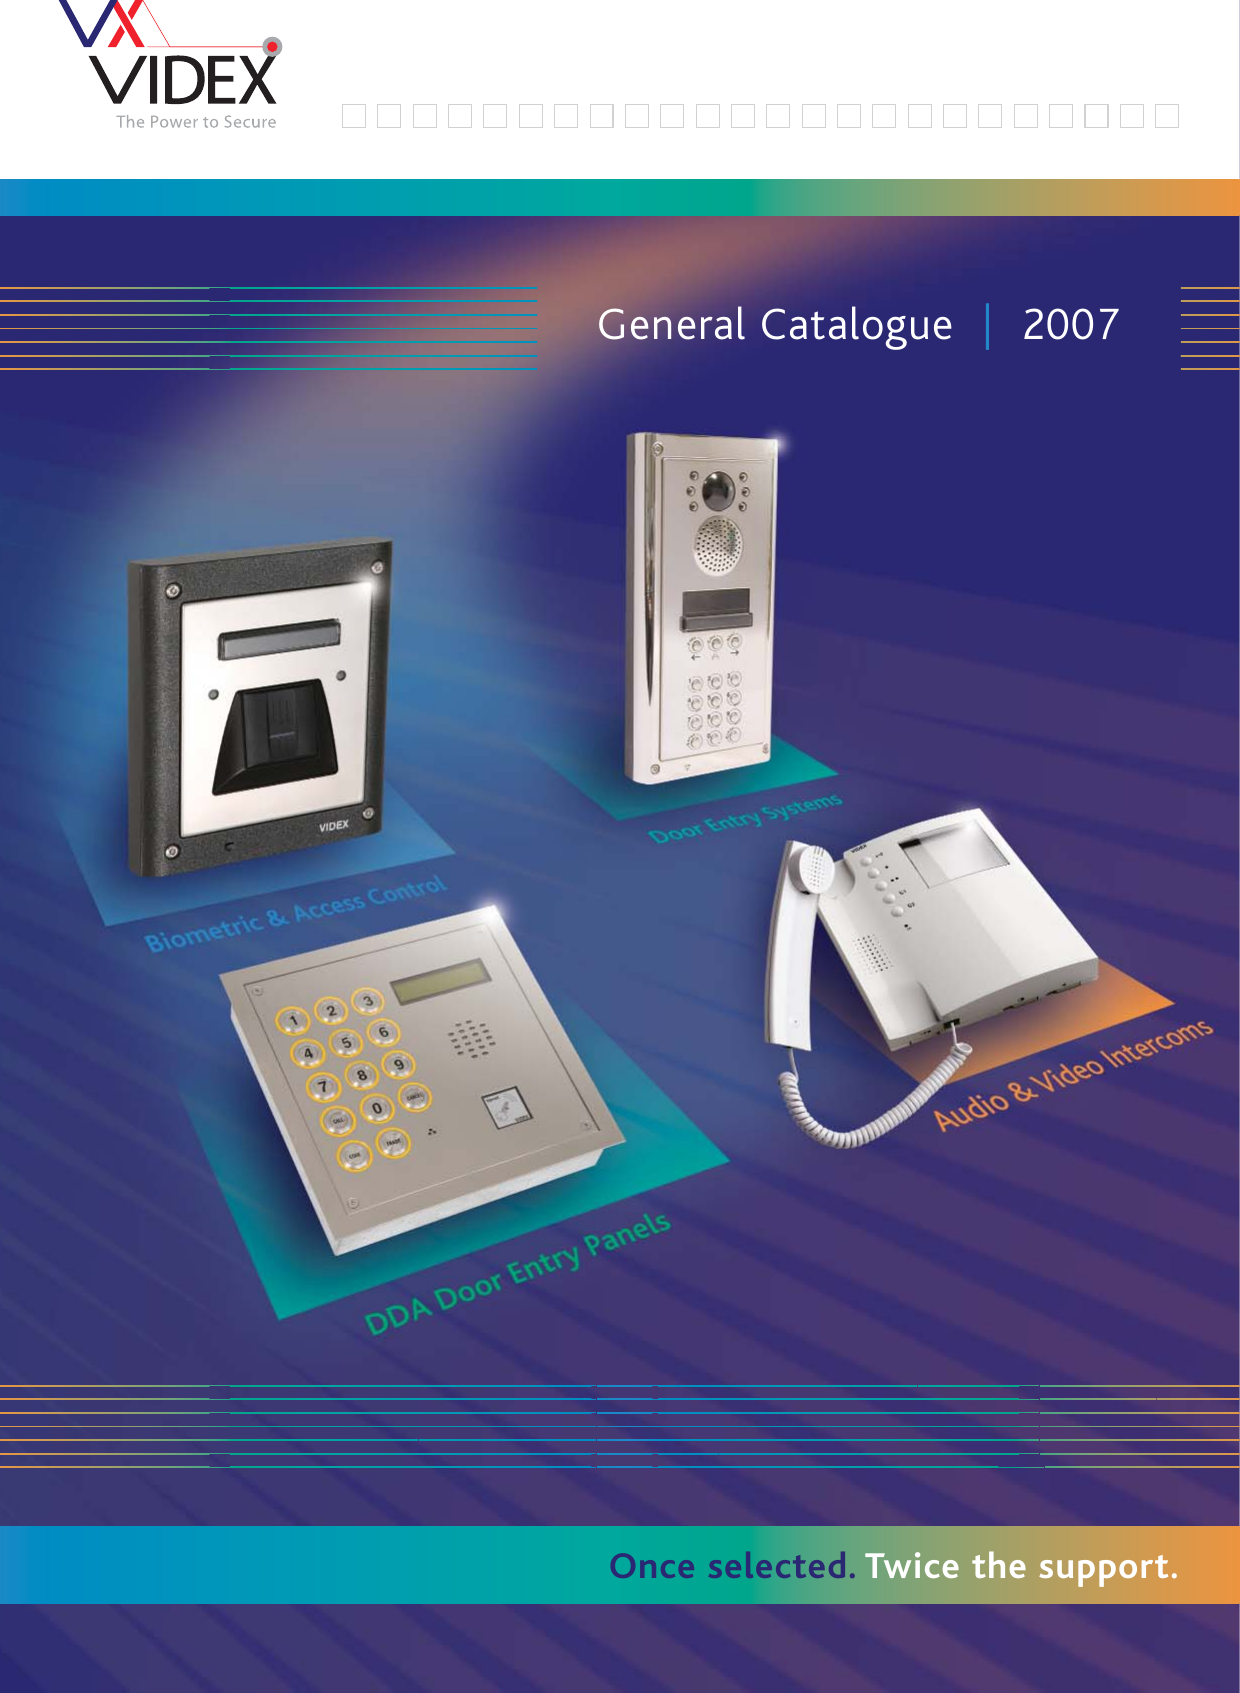 3151 Tla Videx Cat 2007qxp Catalogue 2007 Fullduplex Intercom Pcb For Your Office And House Electronic Design